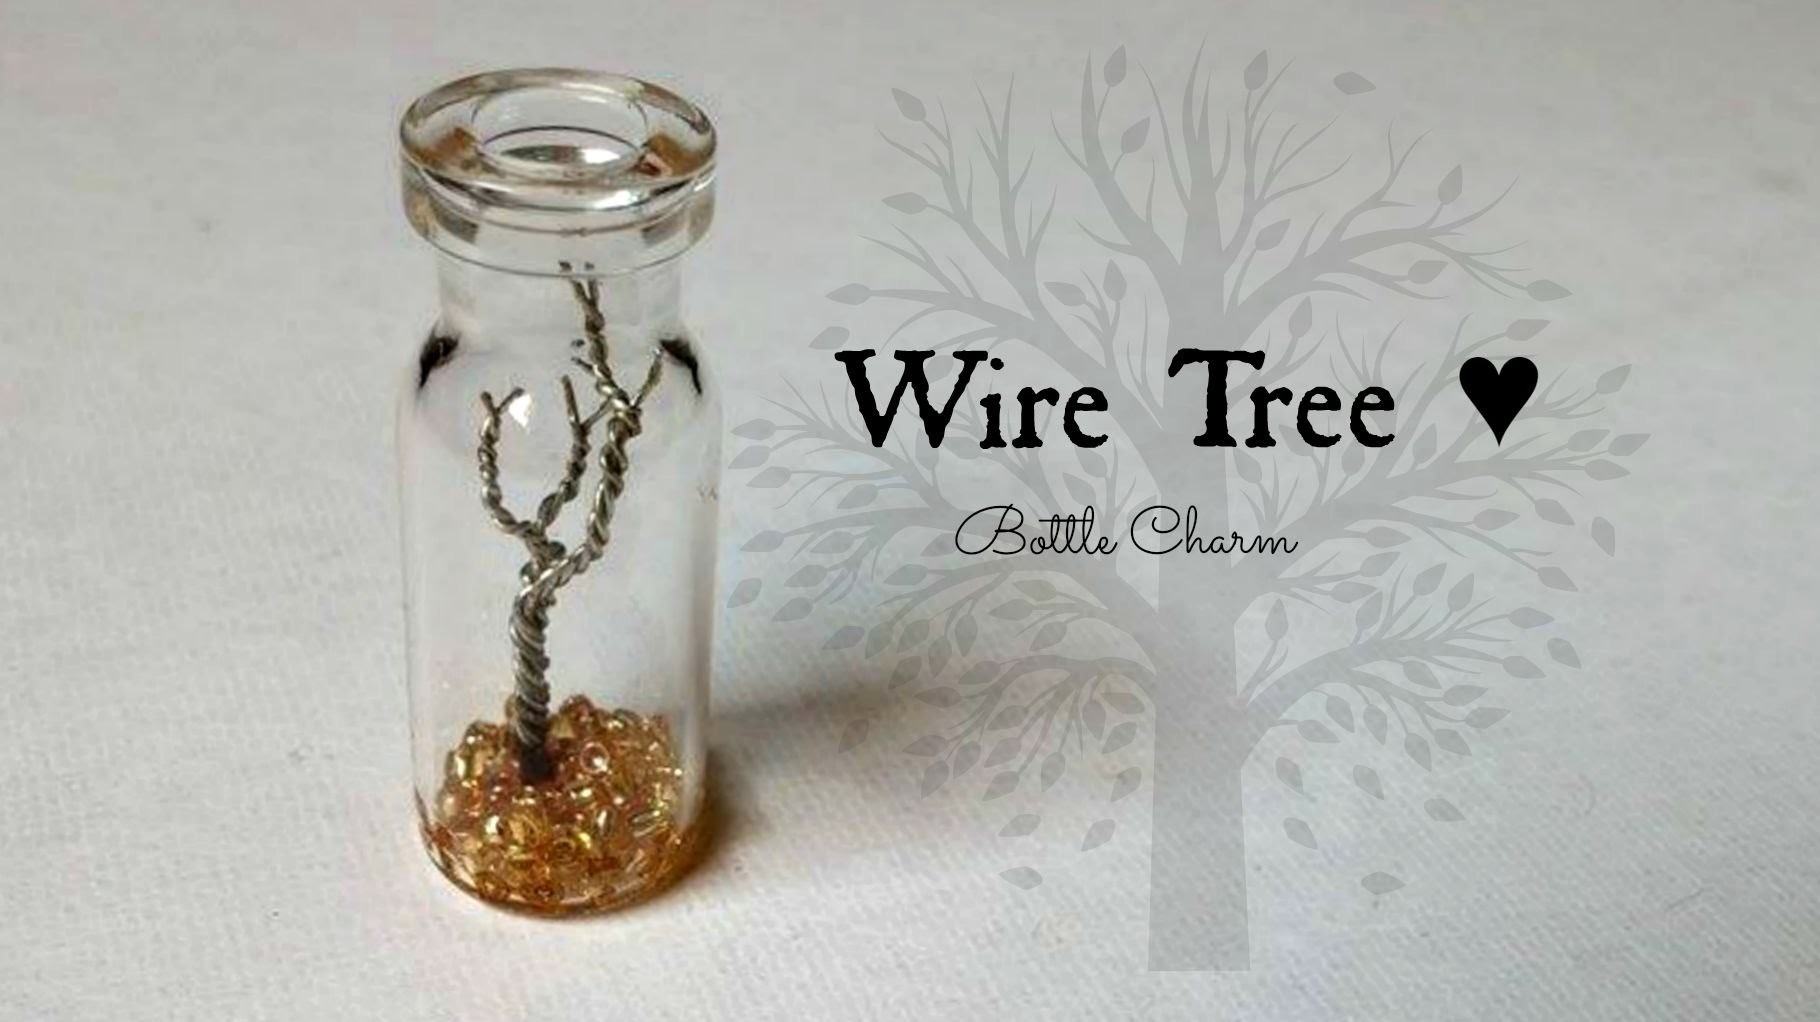 Wire Tree Bottle Charm Tutorial